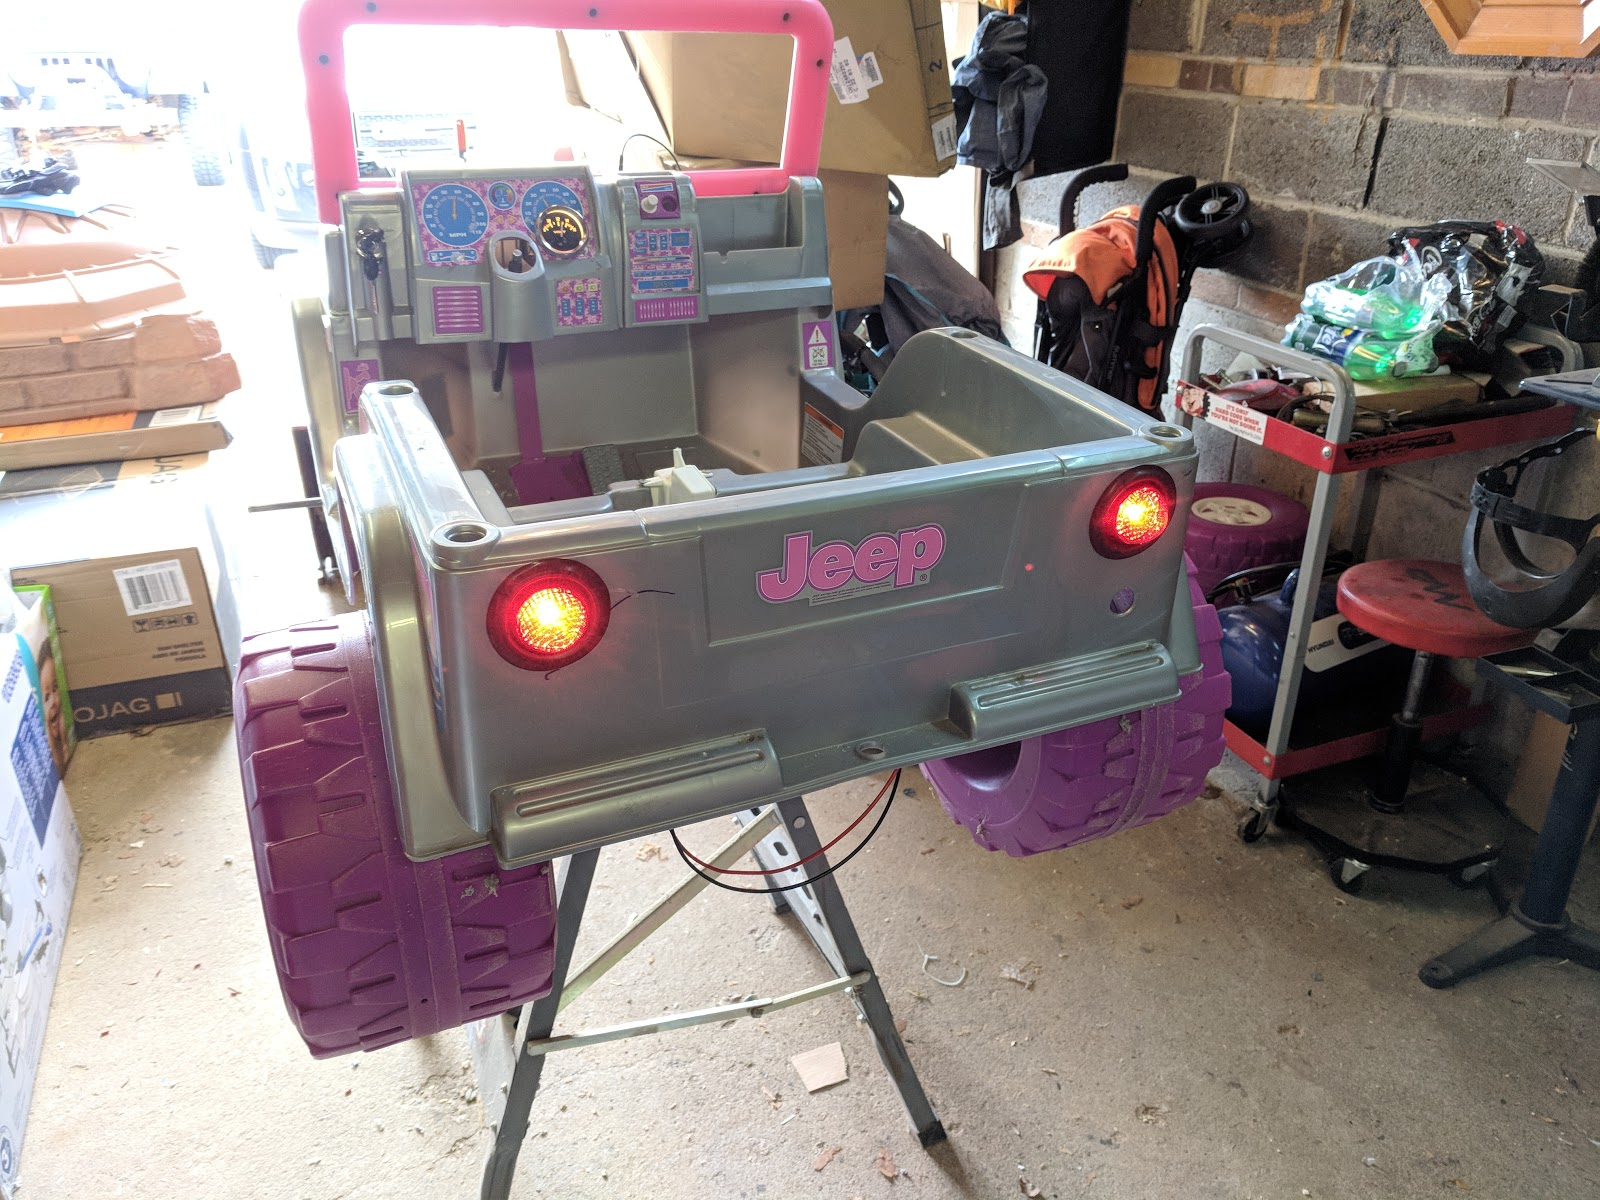 The Jeep Garage Nates Status Update Power Wheels Wiring Harness Ive Built A Full For This It Has Working Ignition Key Fuse Panel All Routes Through Relay Voltmeter In Dash